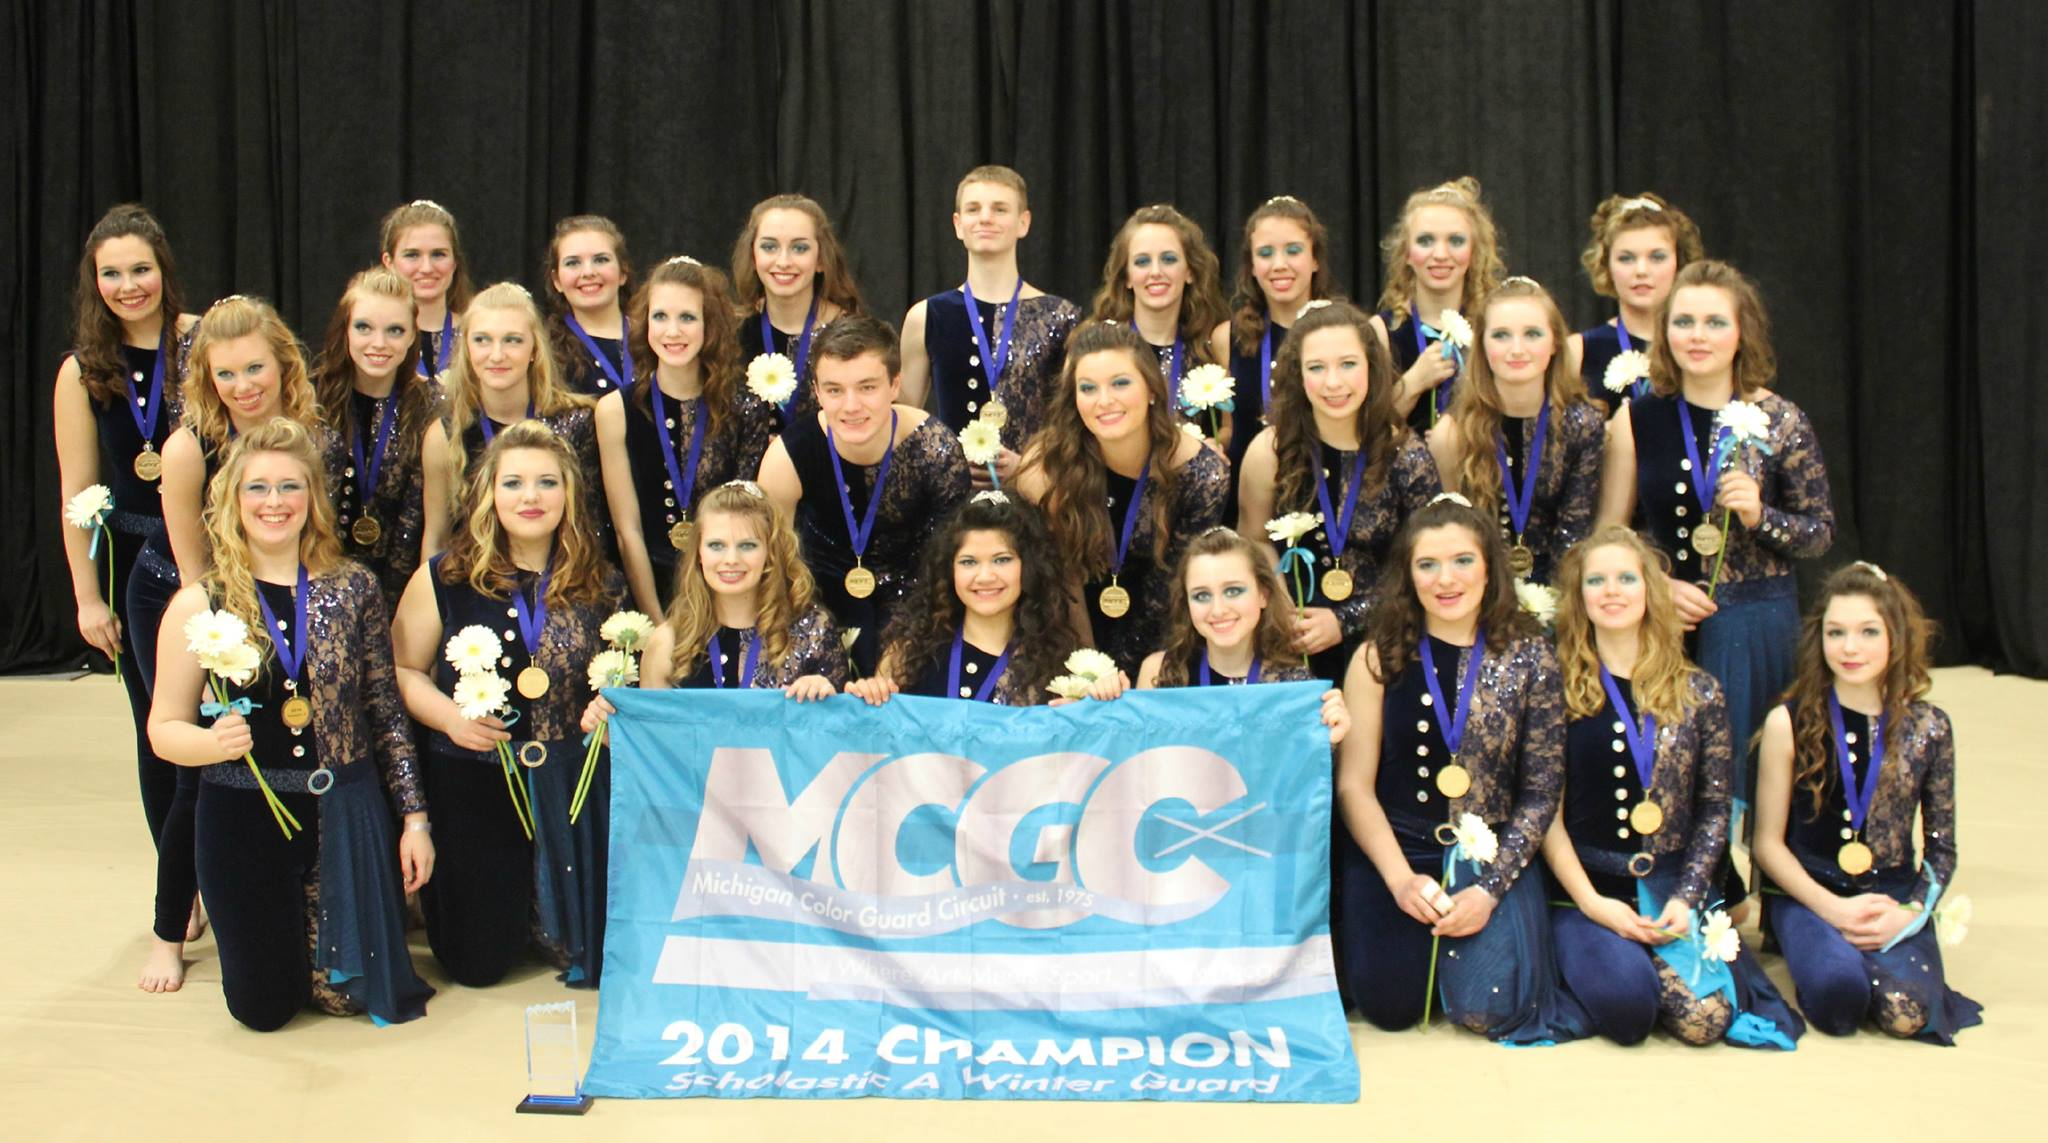 The 2014 Jenison Varsity Winter Guard, MCGC Scholastic A Champion